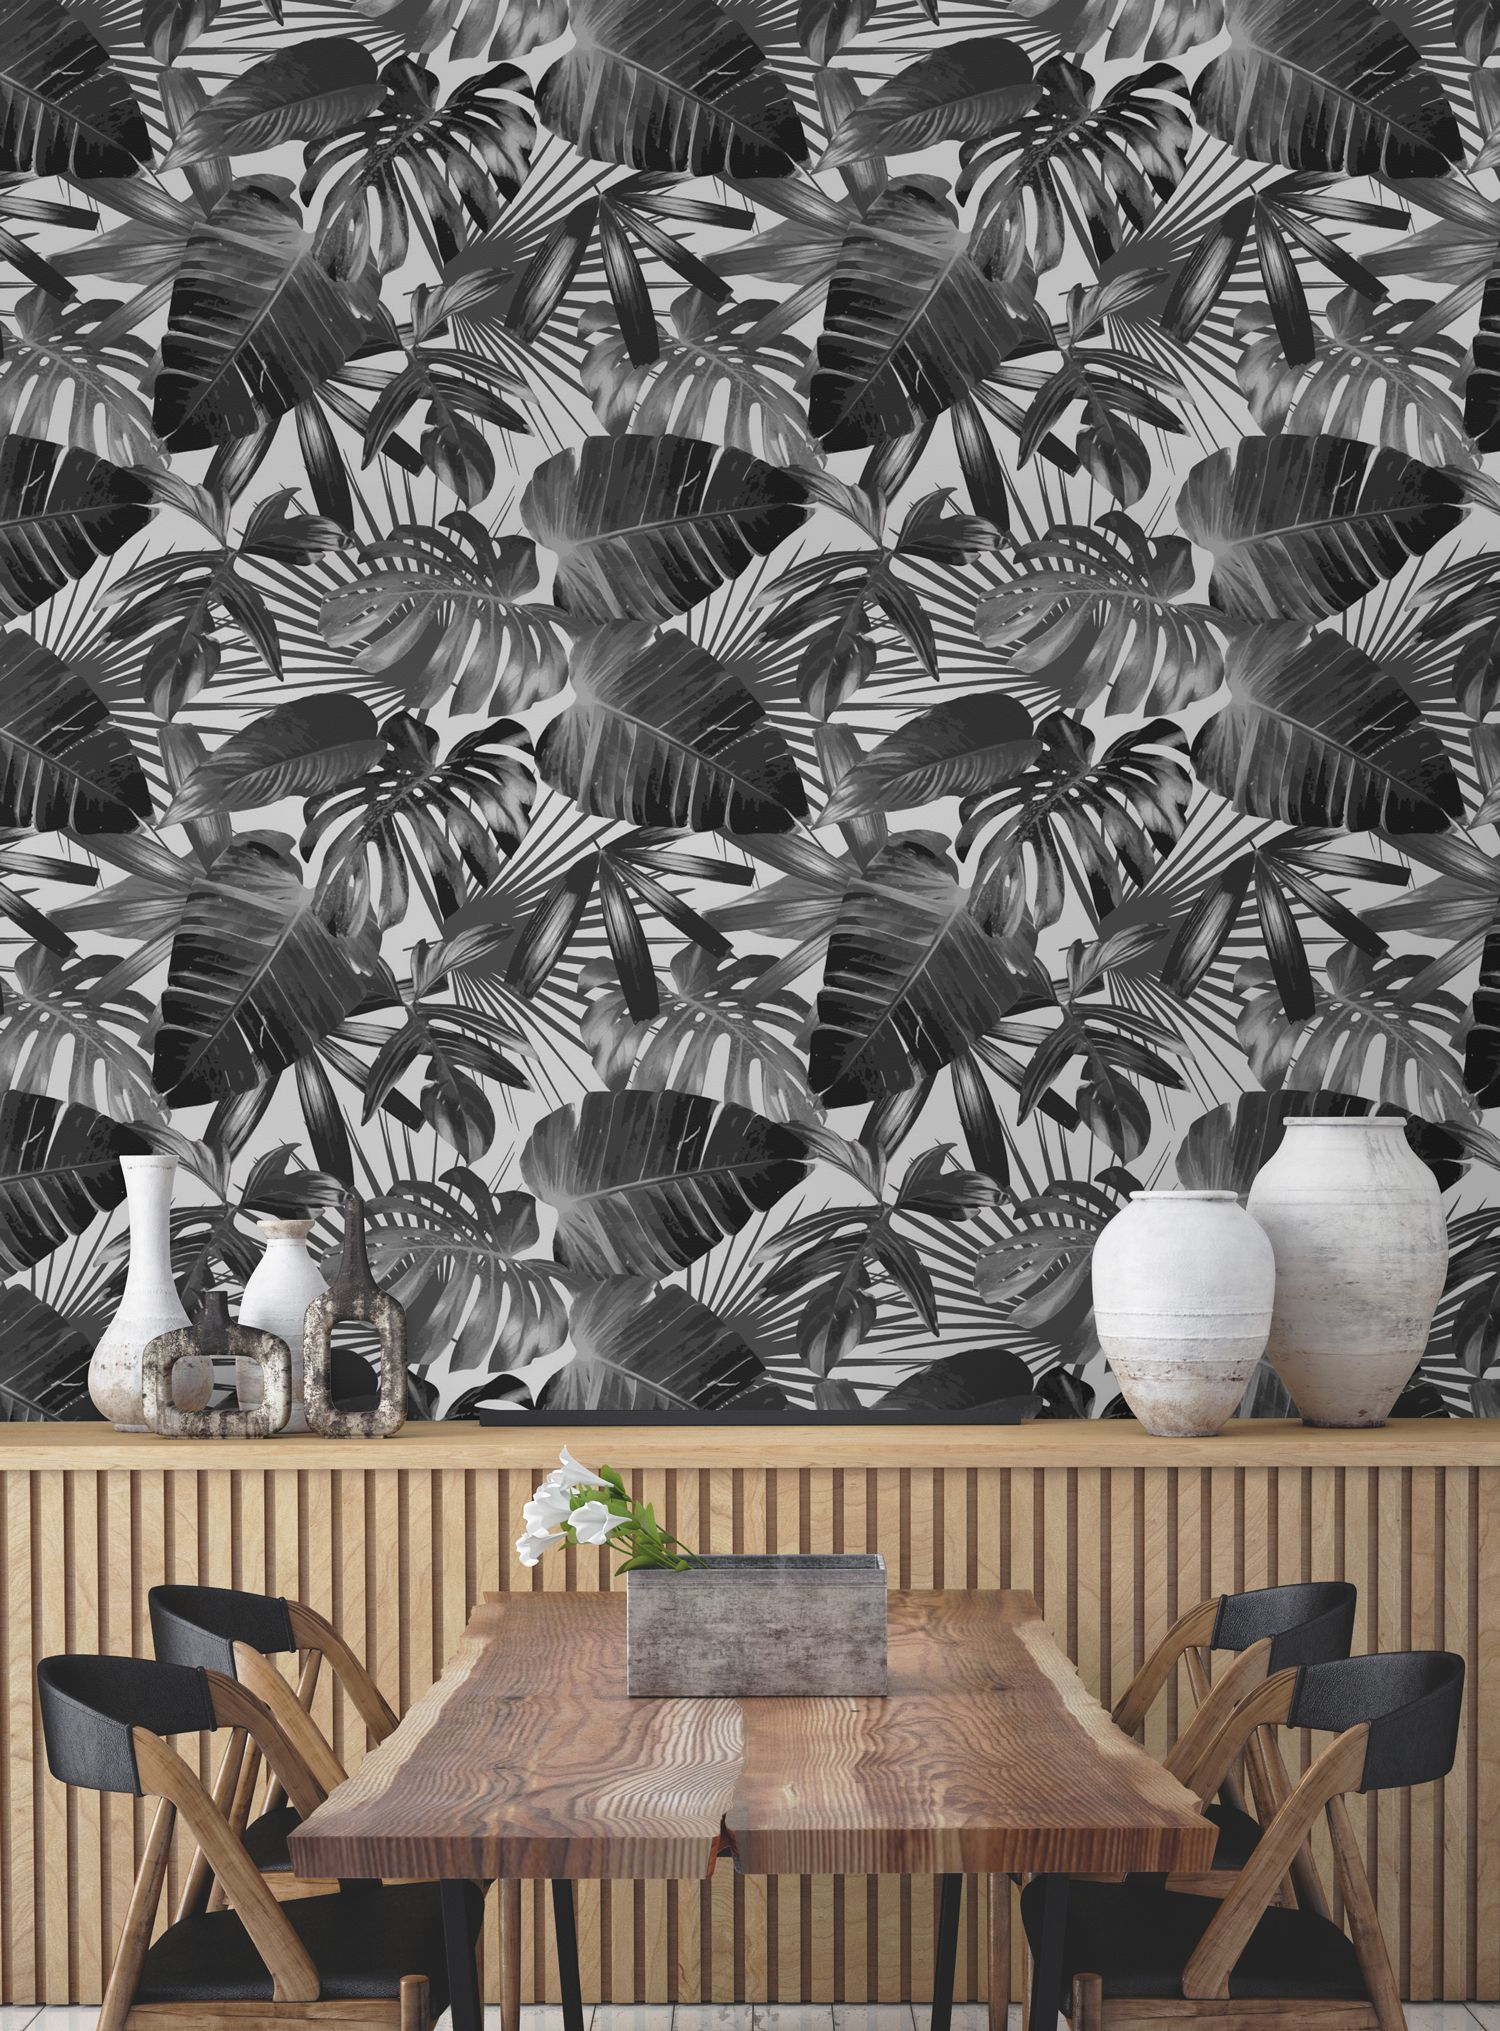 Want to bring jungle vibes into your home? This wallpaper design is brimming with character and definition. Intricately drawn leaves come together to give you a sophisticated yet edgy look to your dining room spaces.